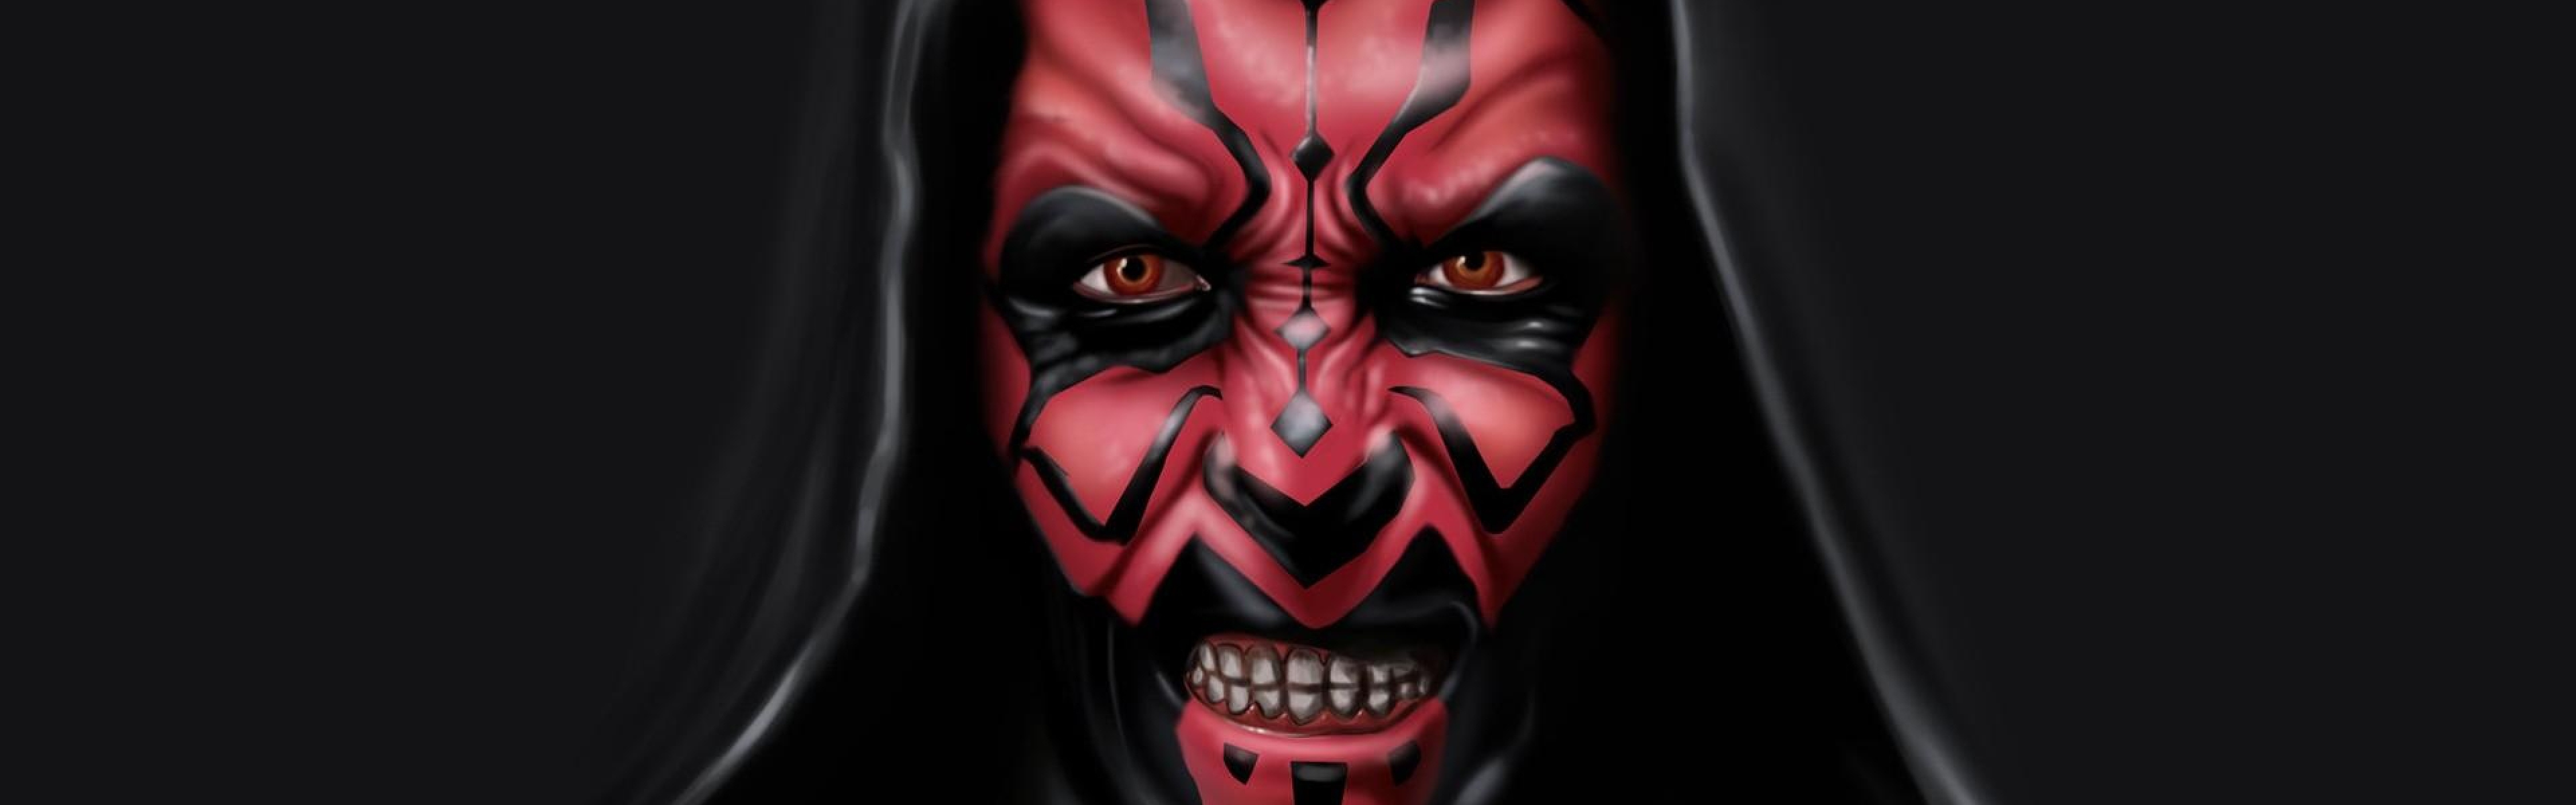 Download Wallpaper 3840x1200 sith star wars darth maul dark side 3840x1200